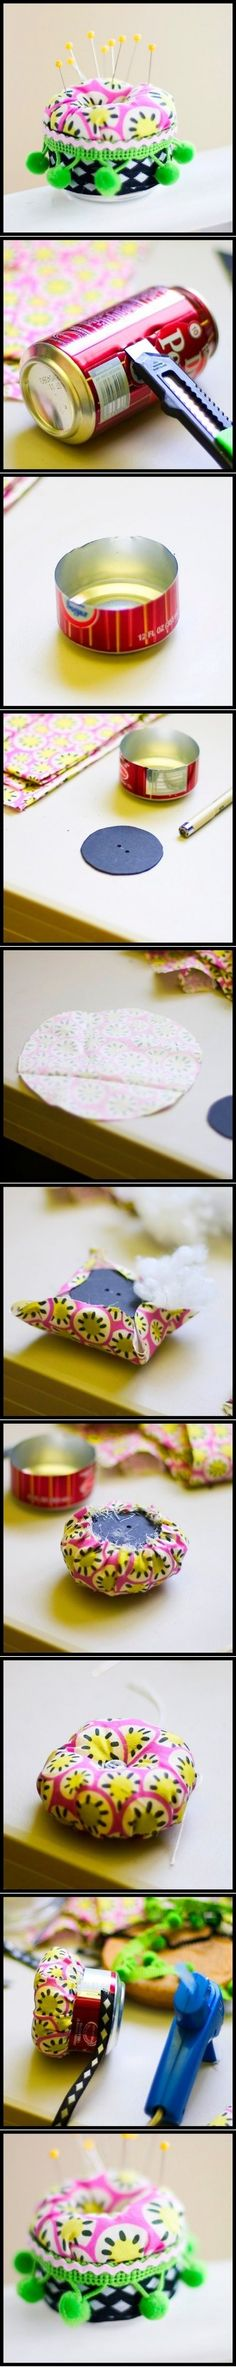 DIY Soda Can Pincushion.....or maybe a plastic container?